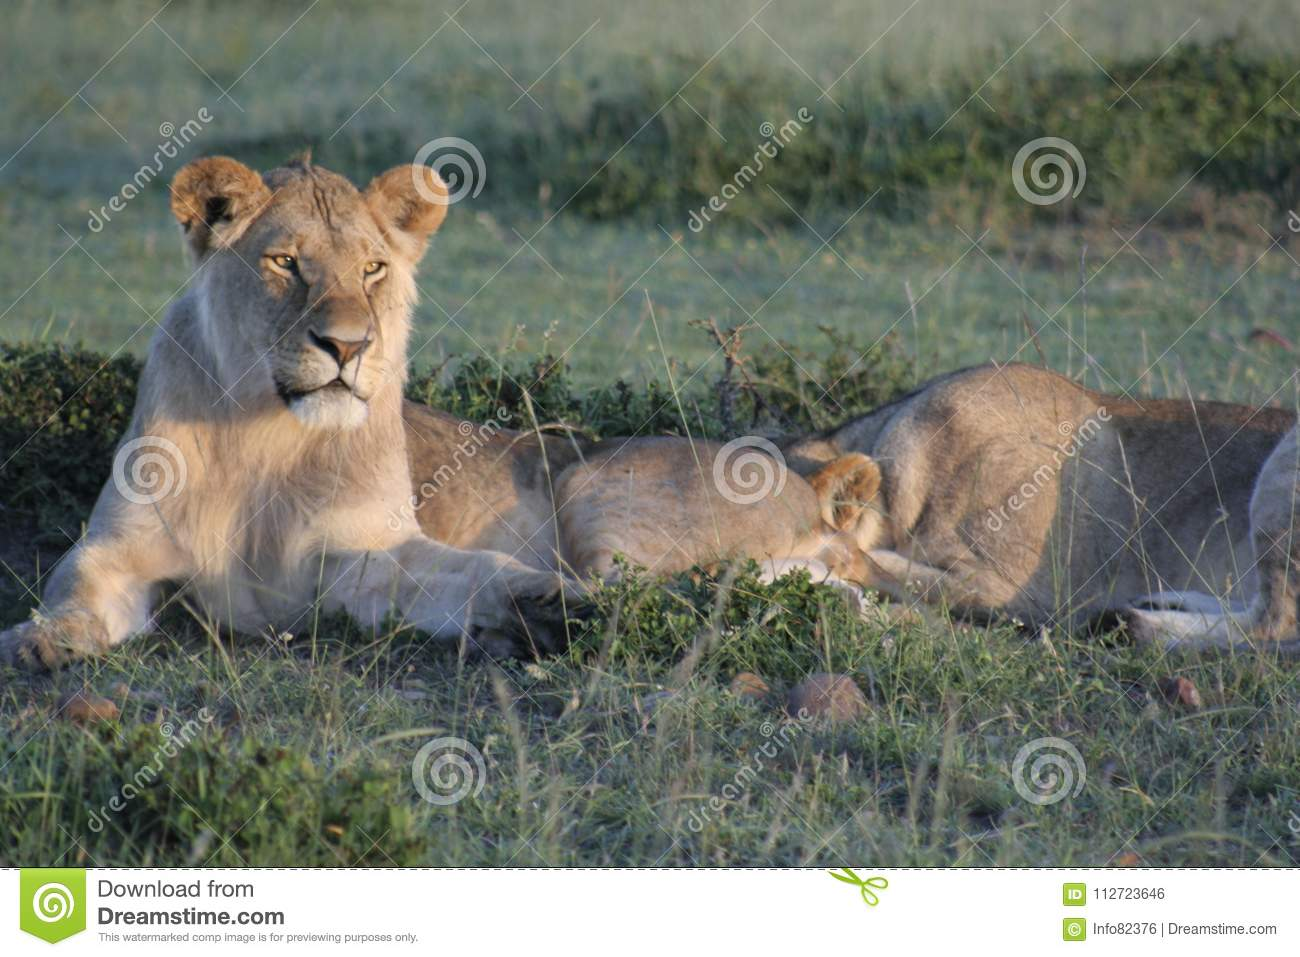 Image of: Most Dangerous This Photo Was Taken In The Heart Of African Savannamasai Mara Kenyalions Are Nocturnal Animalslions Are The The King Of The Jungle Dreamstimecom Lioness Pathela Leo Simba In Masai Mara In Kenyan Stock Photo